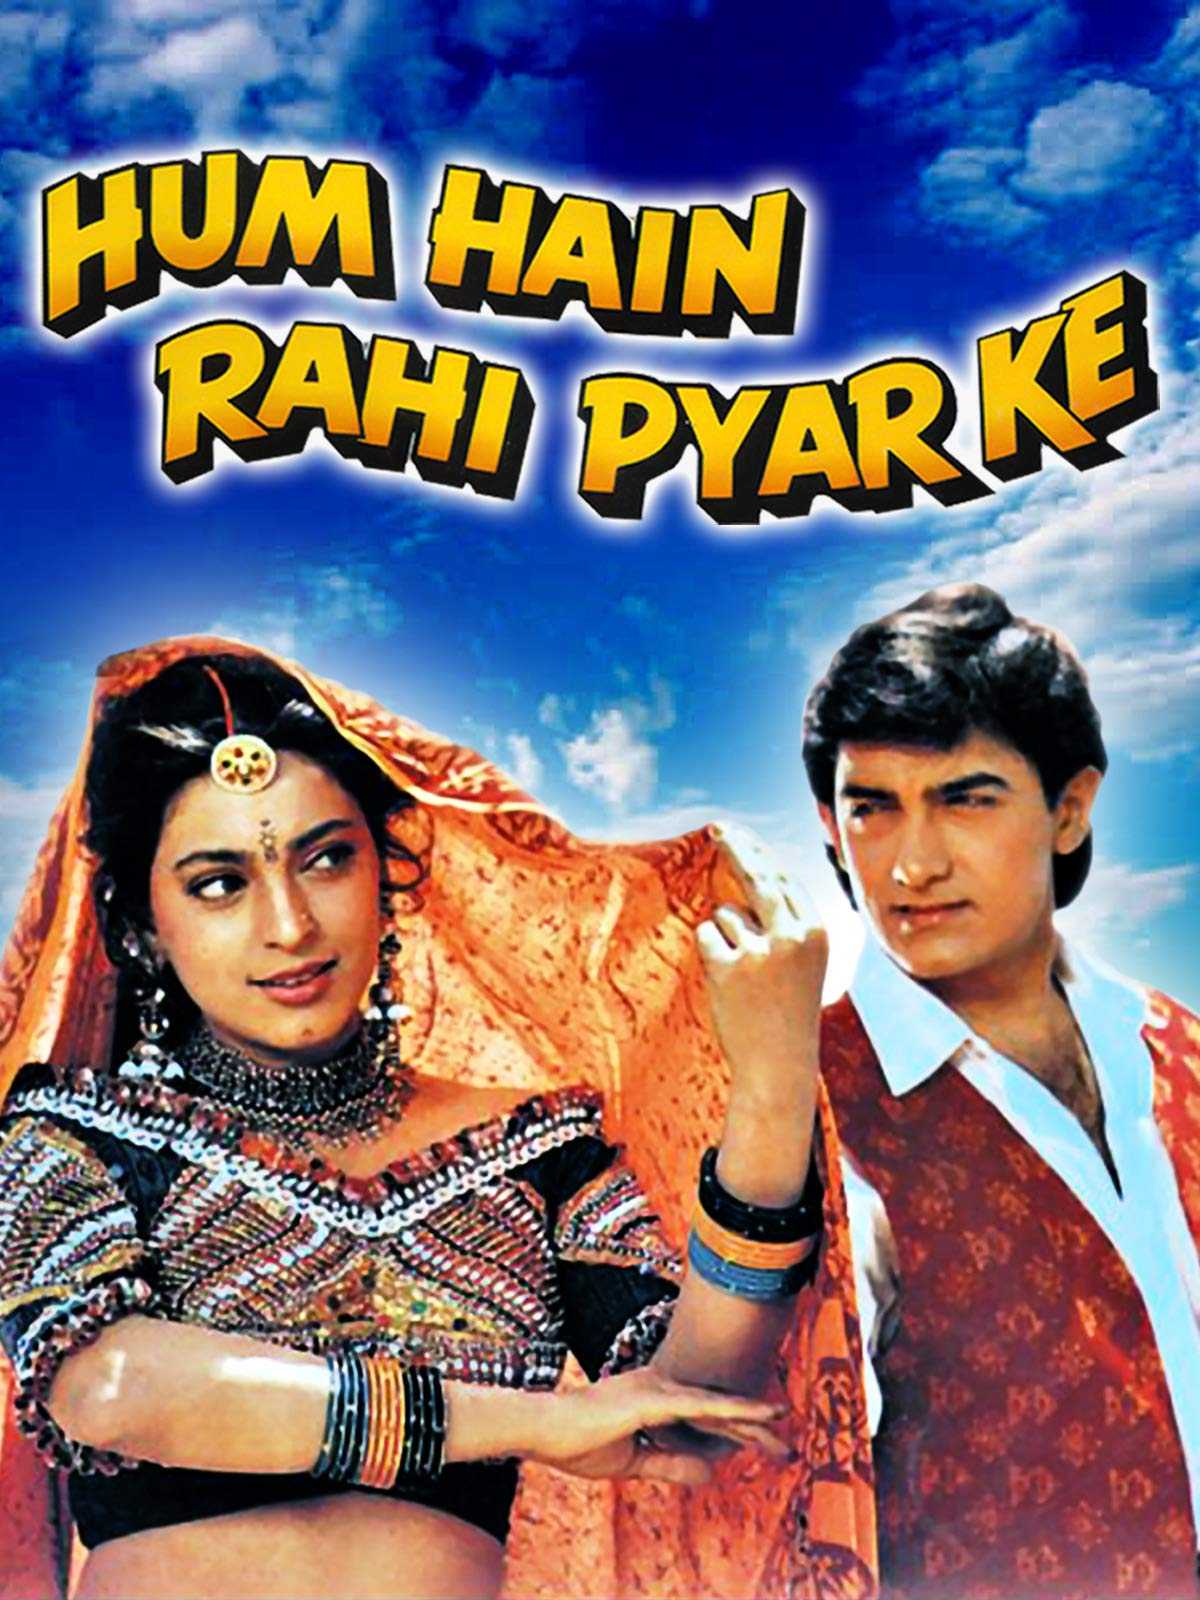 Hum Hain Rahi Pyar Ke 1993 Hindi 720p AMZN HDRip ESubs 1045MB Download